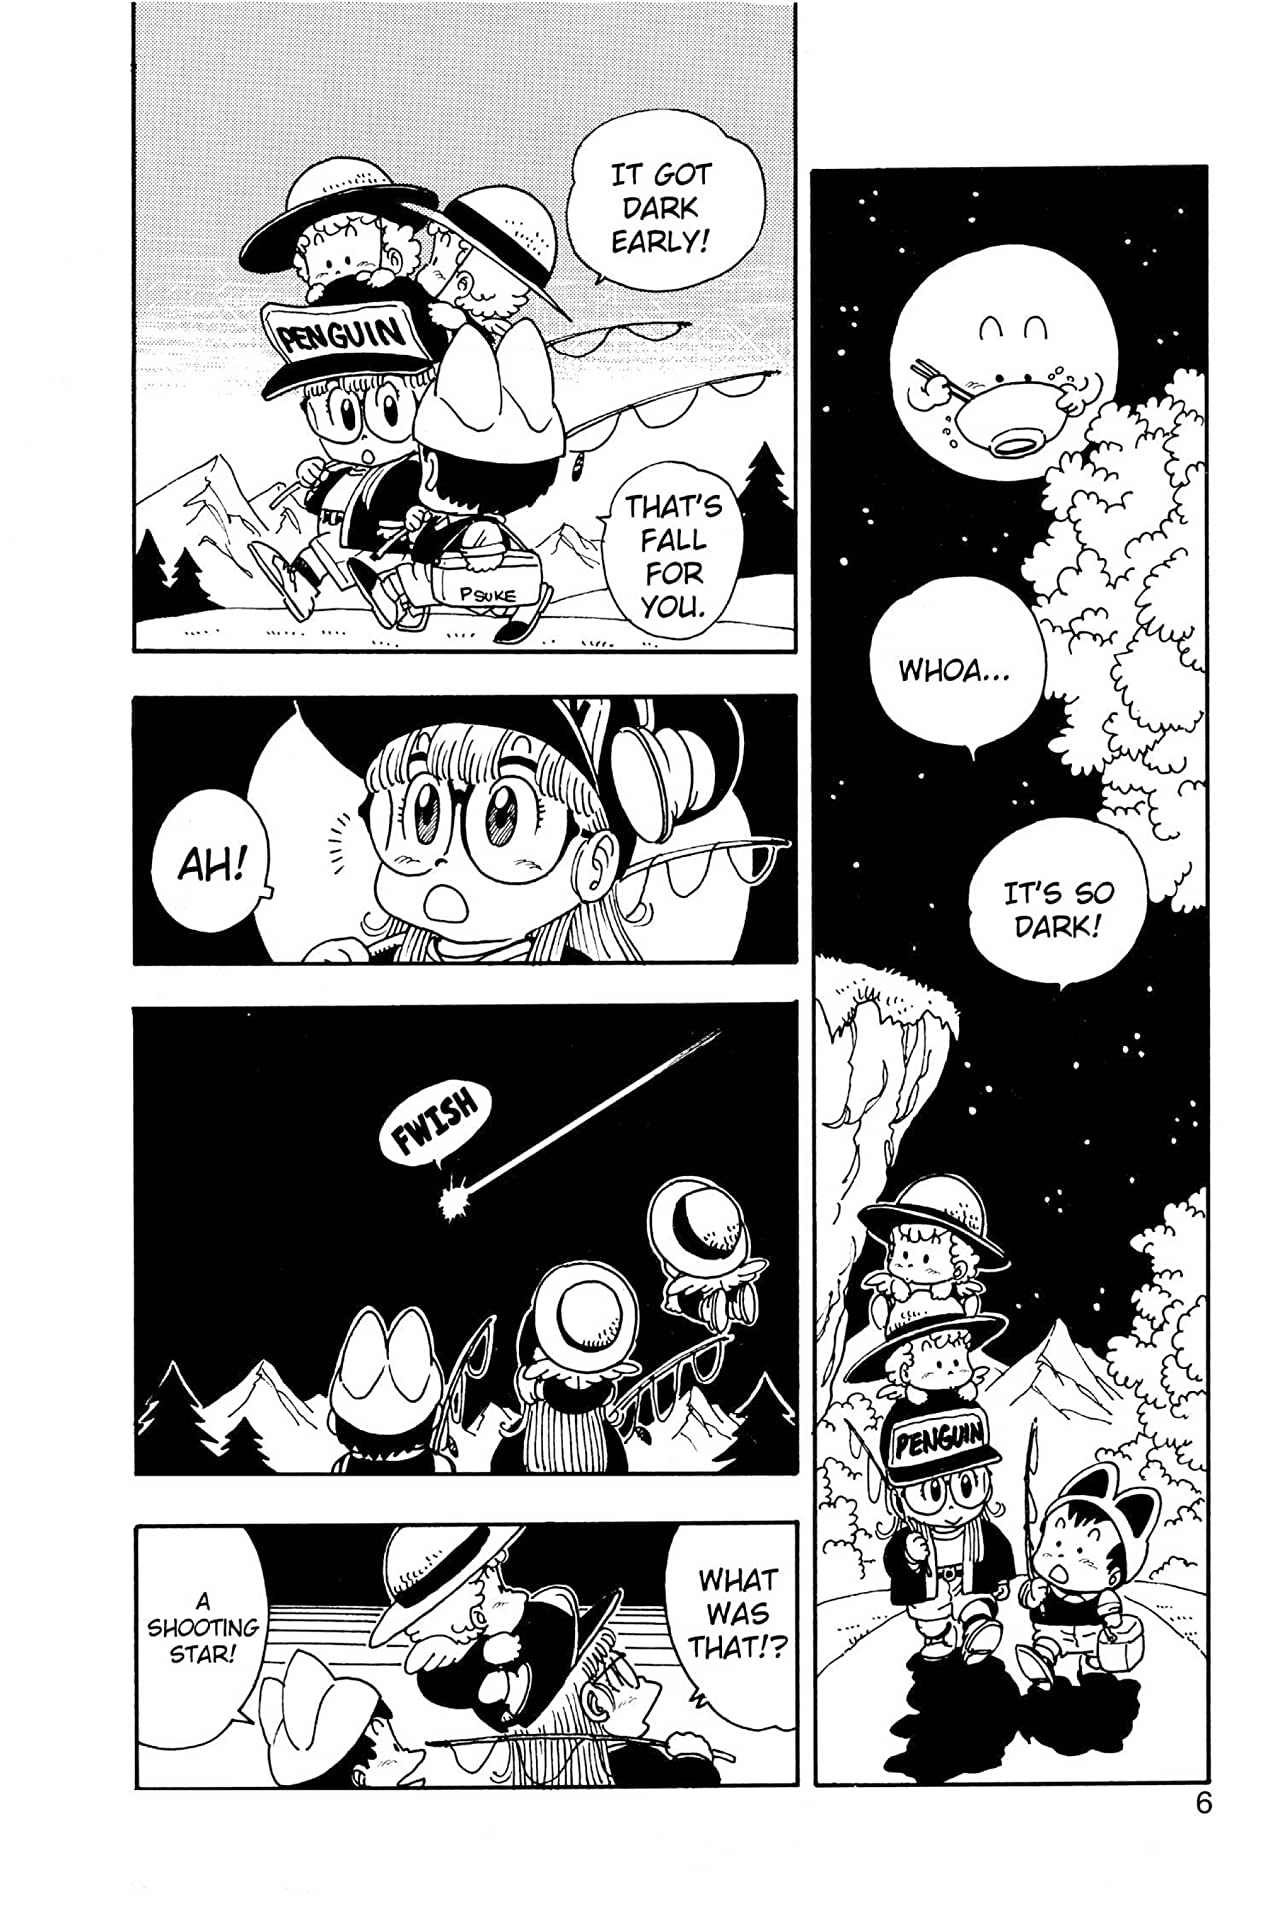 Dr. Slump Vol. 12